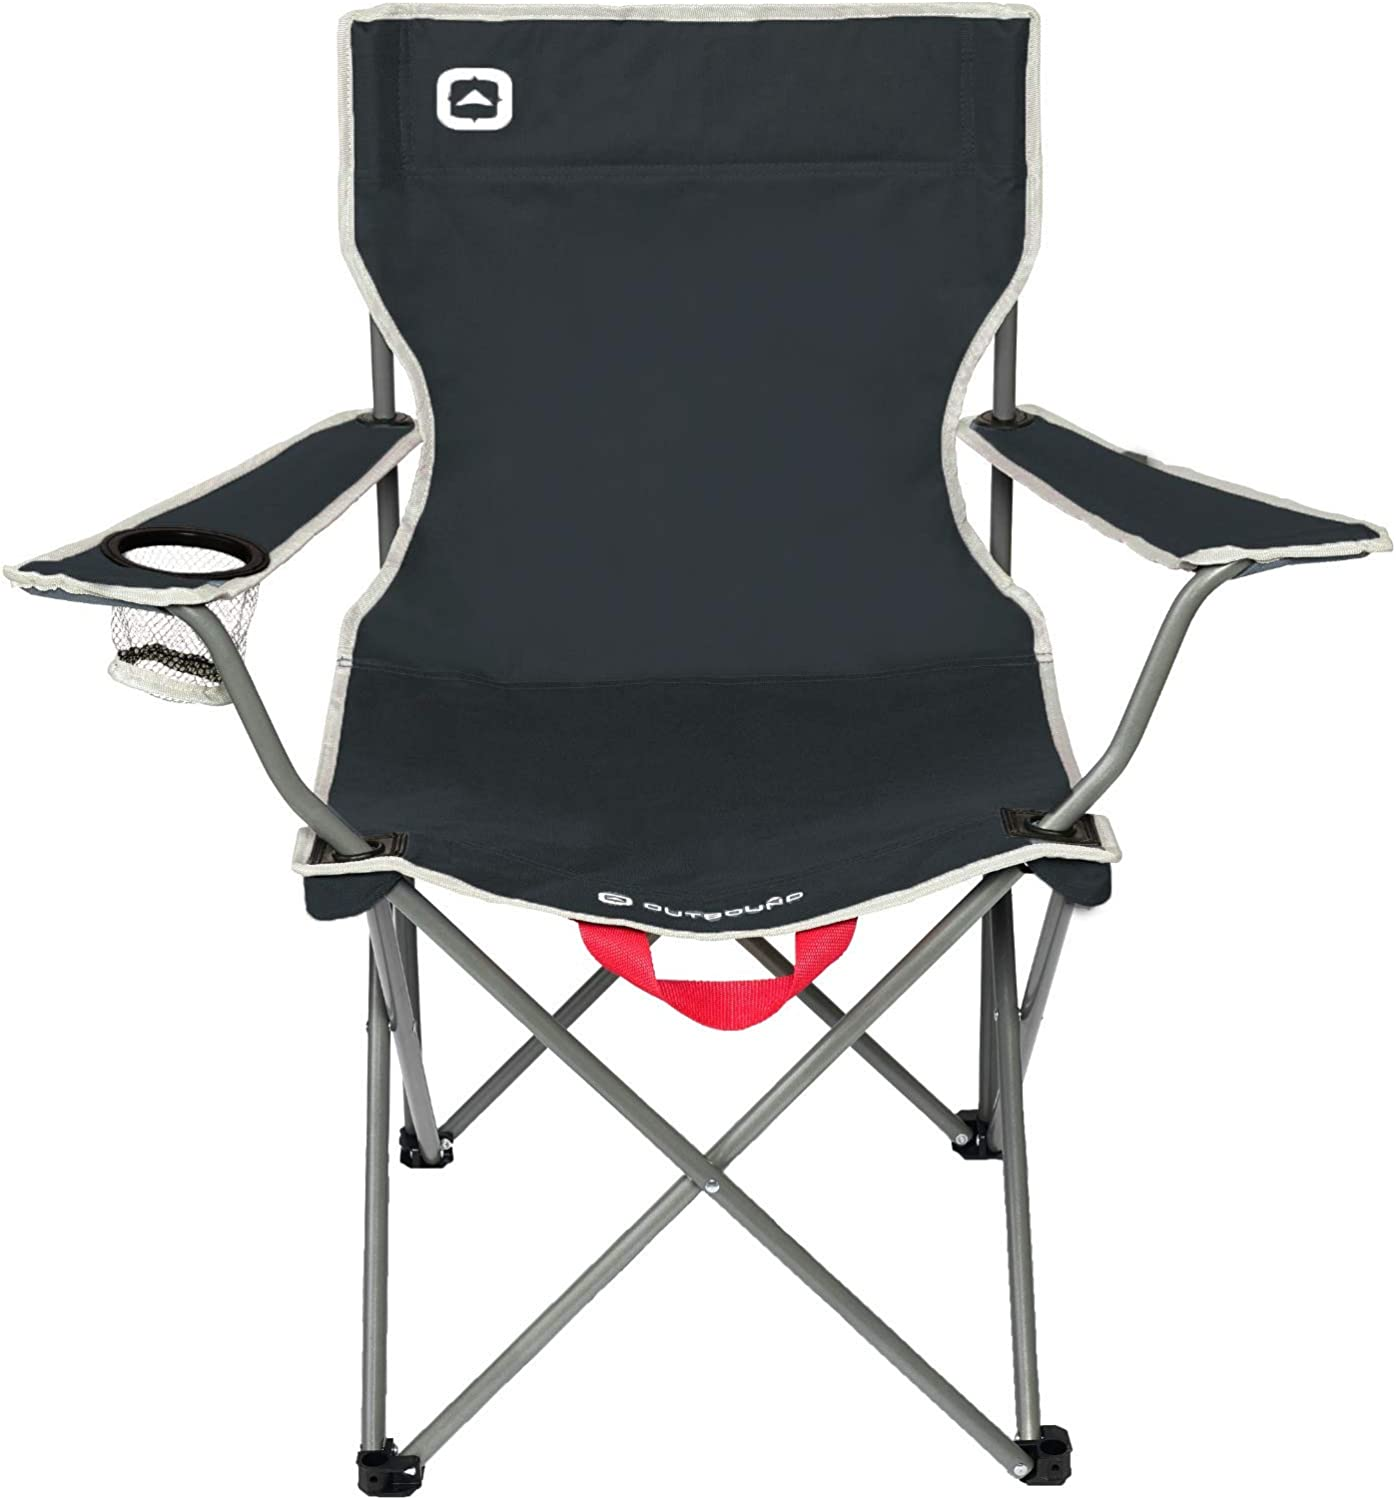 Outbound Camping Chair Portable Foldable Wide Back Quad Chair with Cup Holder Lightweight and Perfect for The Beach, Backpacking, and The Outdoors Black, Gray